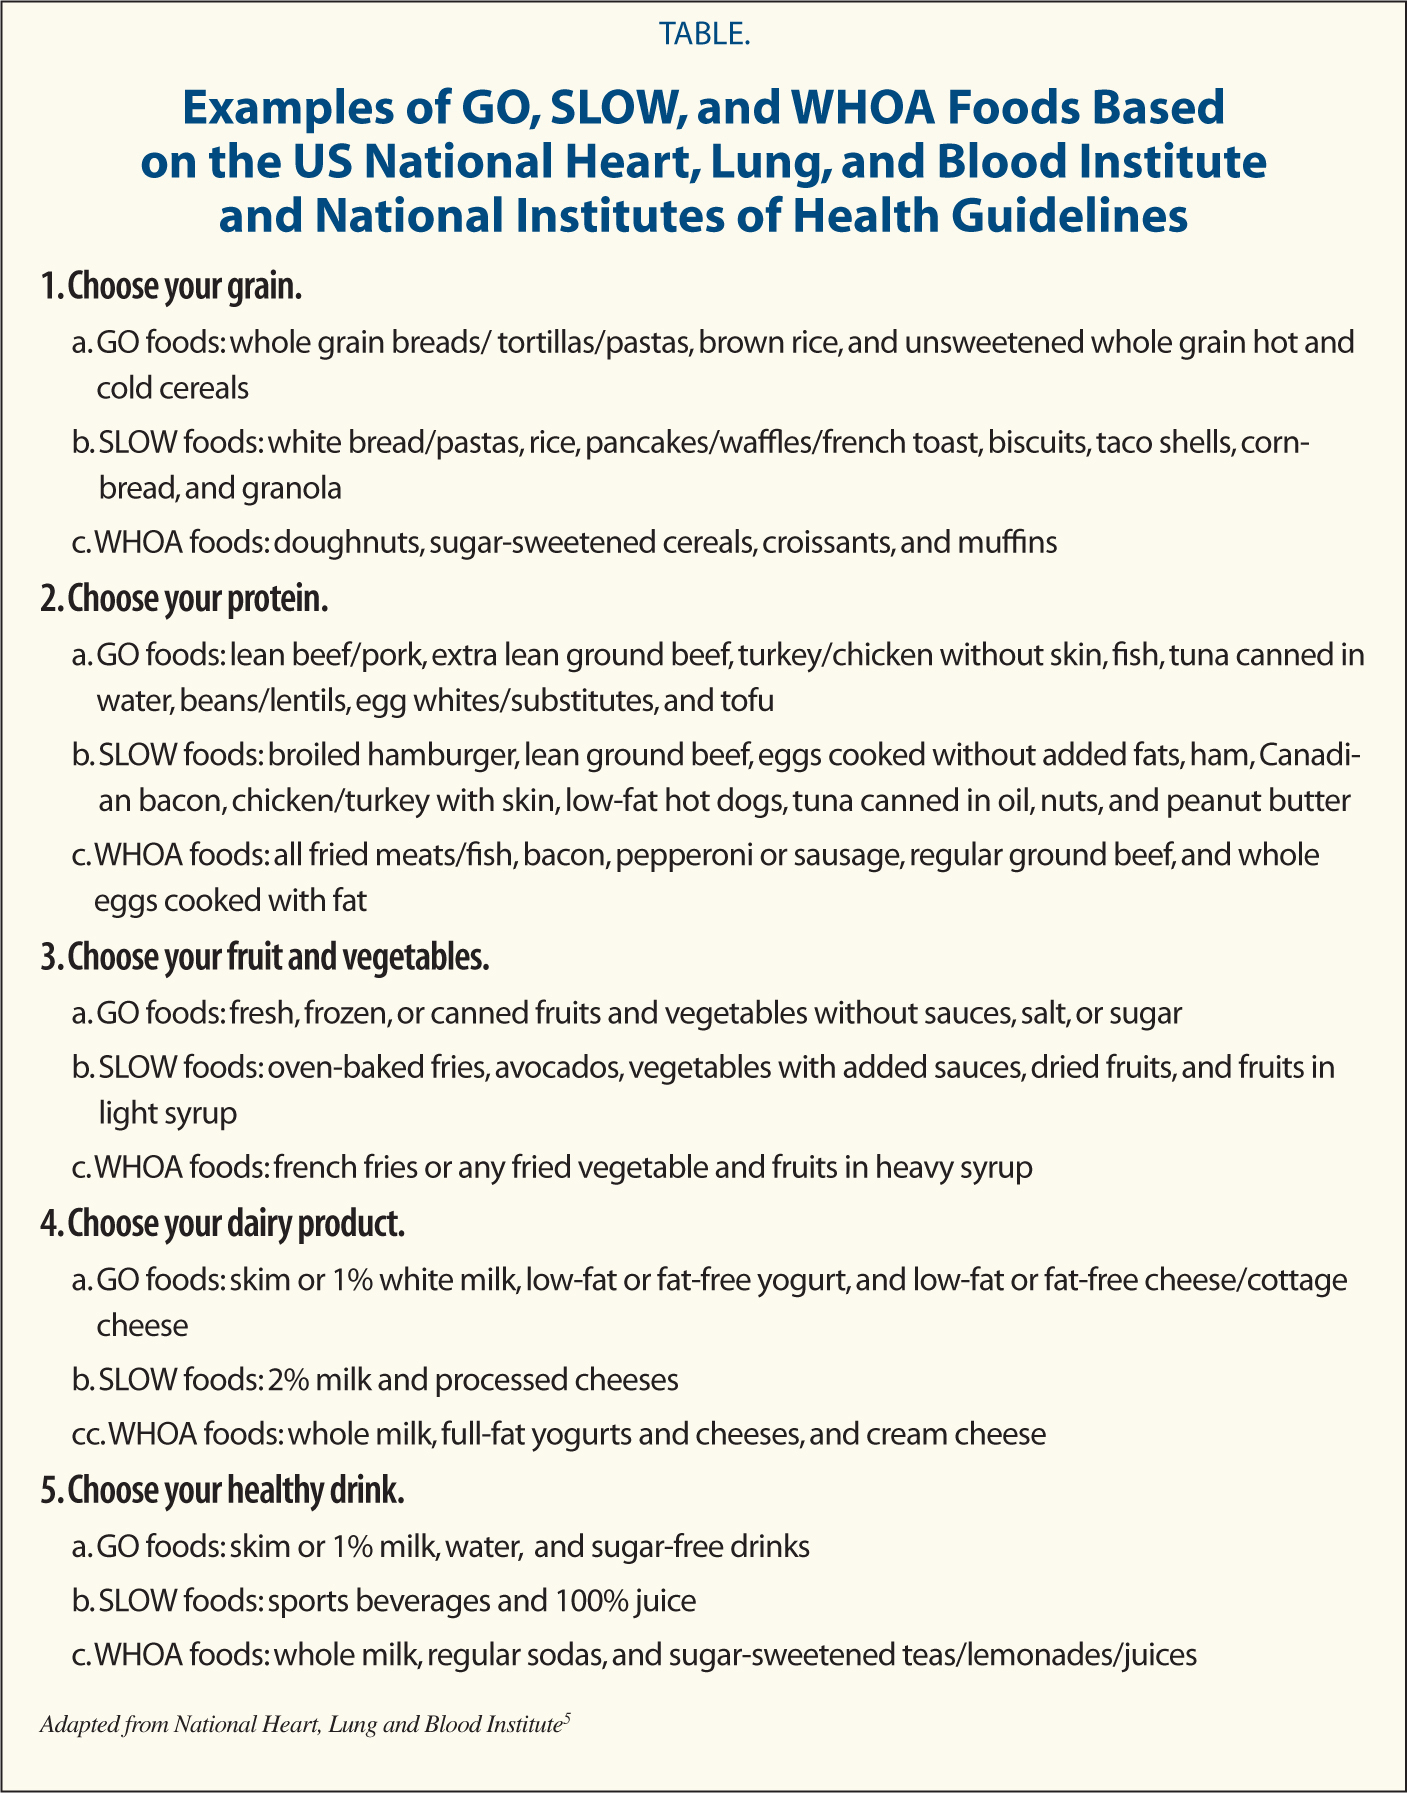 Examples of GO, SLOW, and WHOA Foods Based on the US National Heart, Lung, and Blood Institute and National Institutes of Health Guidelines